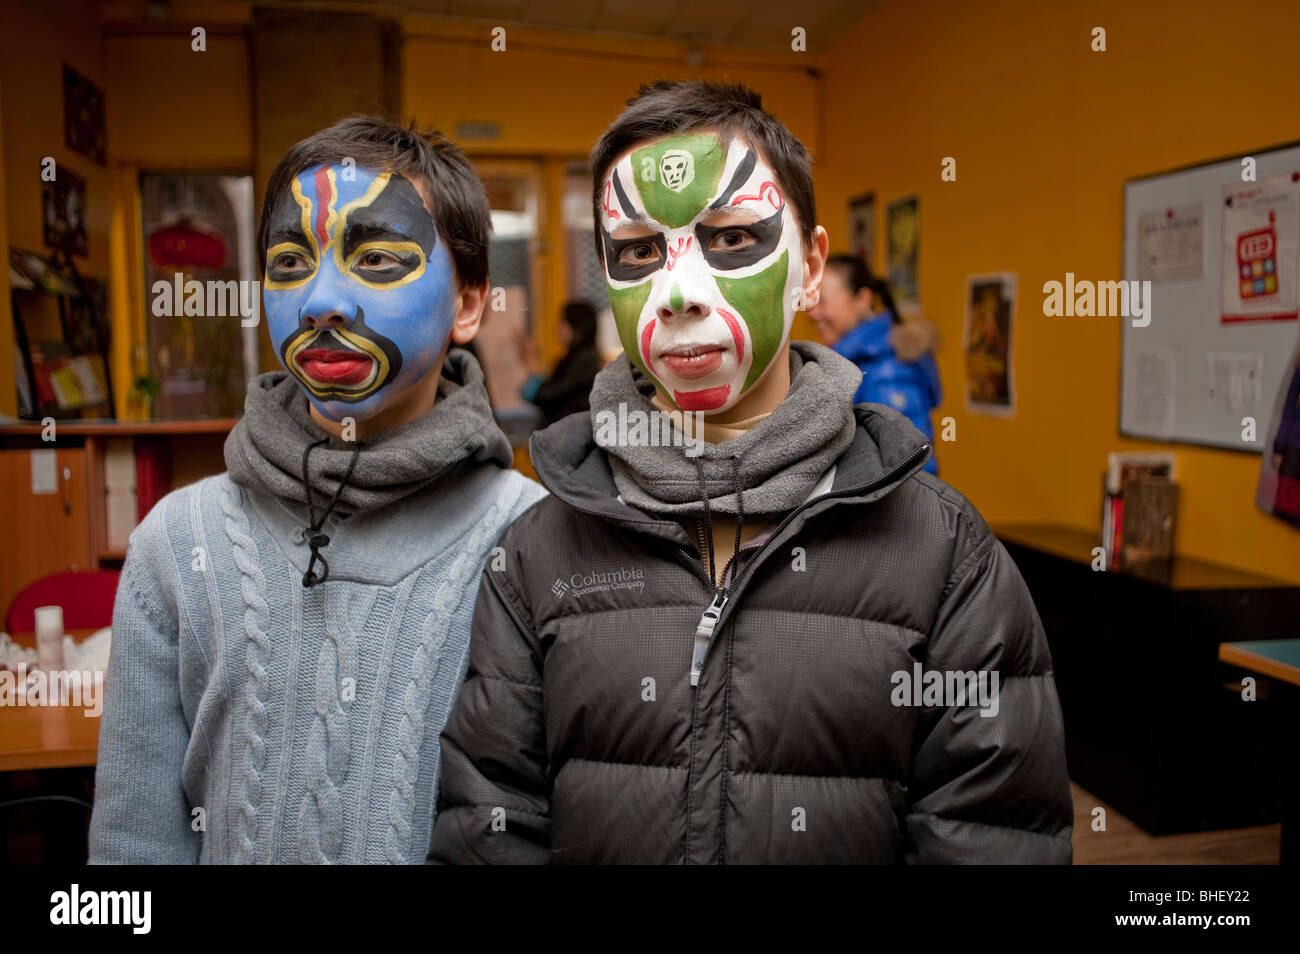 Paris, France, Asians Celebrating Chinese New years, Annual Street Carnival Parade, Portrait Children, Boys with - Stock Image